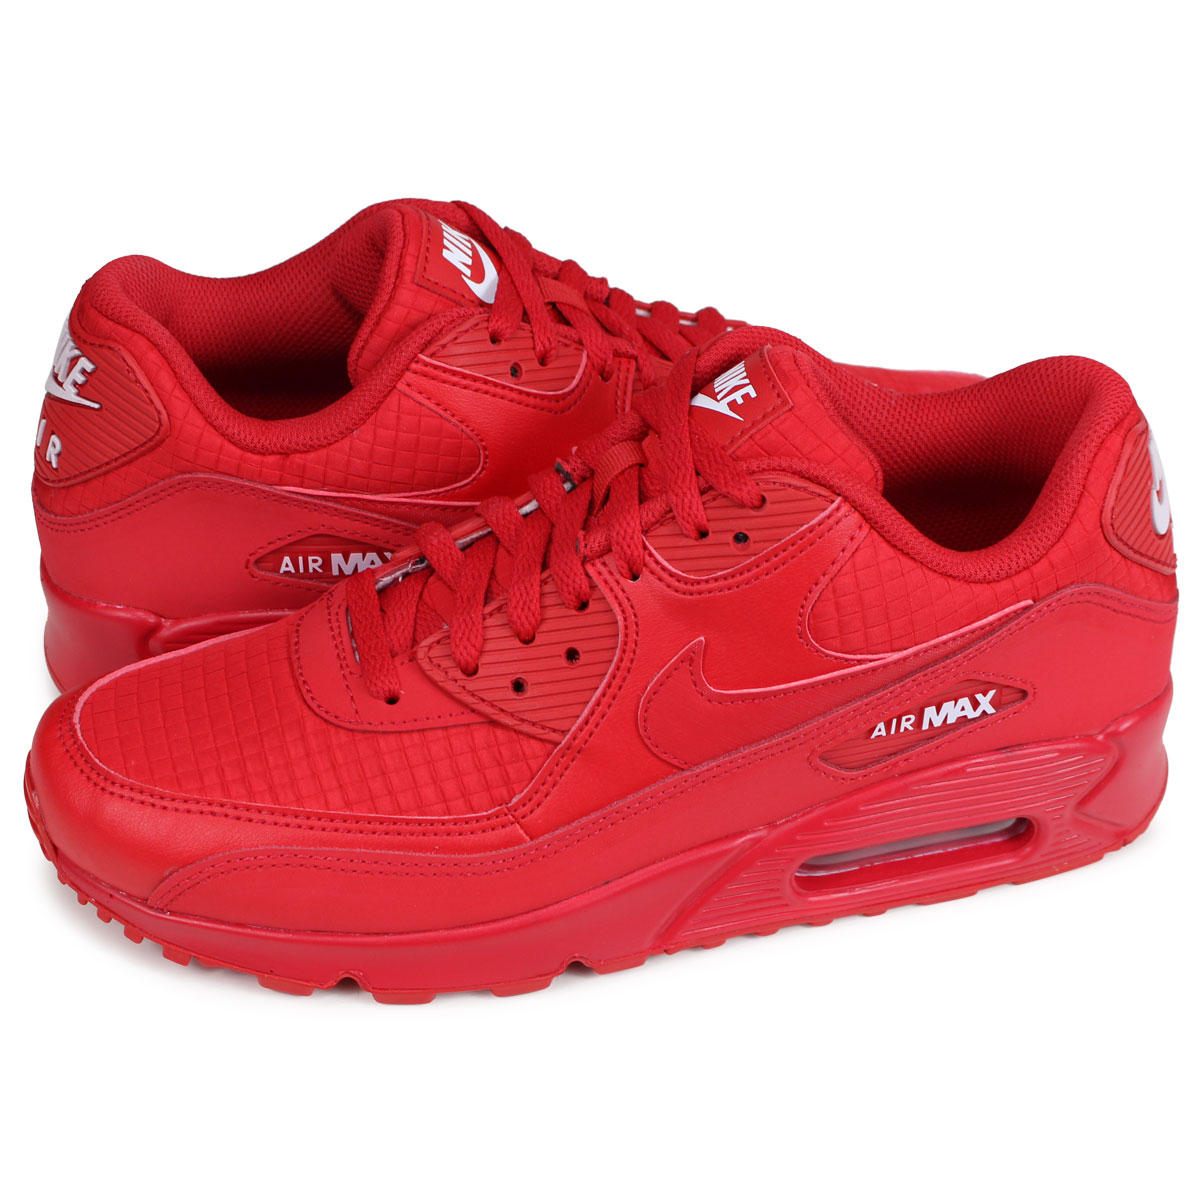 Nike NIKE Air Max 90 essential sneakers men gap Dis AIR MAX 90 ESSENTIAL red red AJ1285 602 [197]